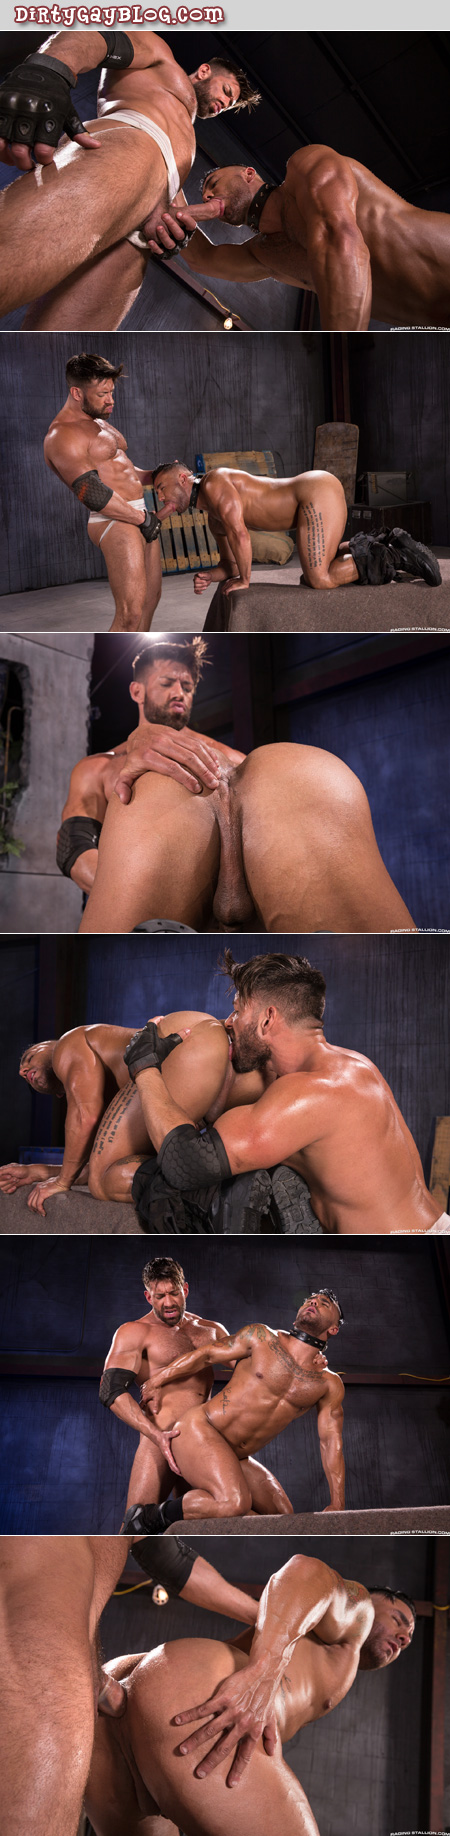 Muscle Daddy serviced by his gay bondage slave.